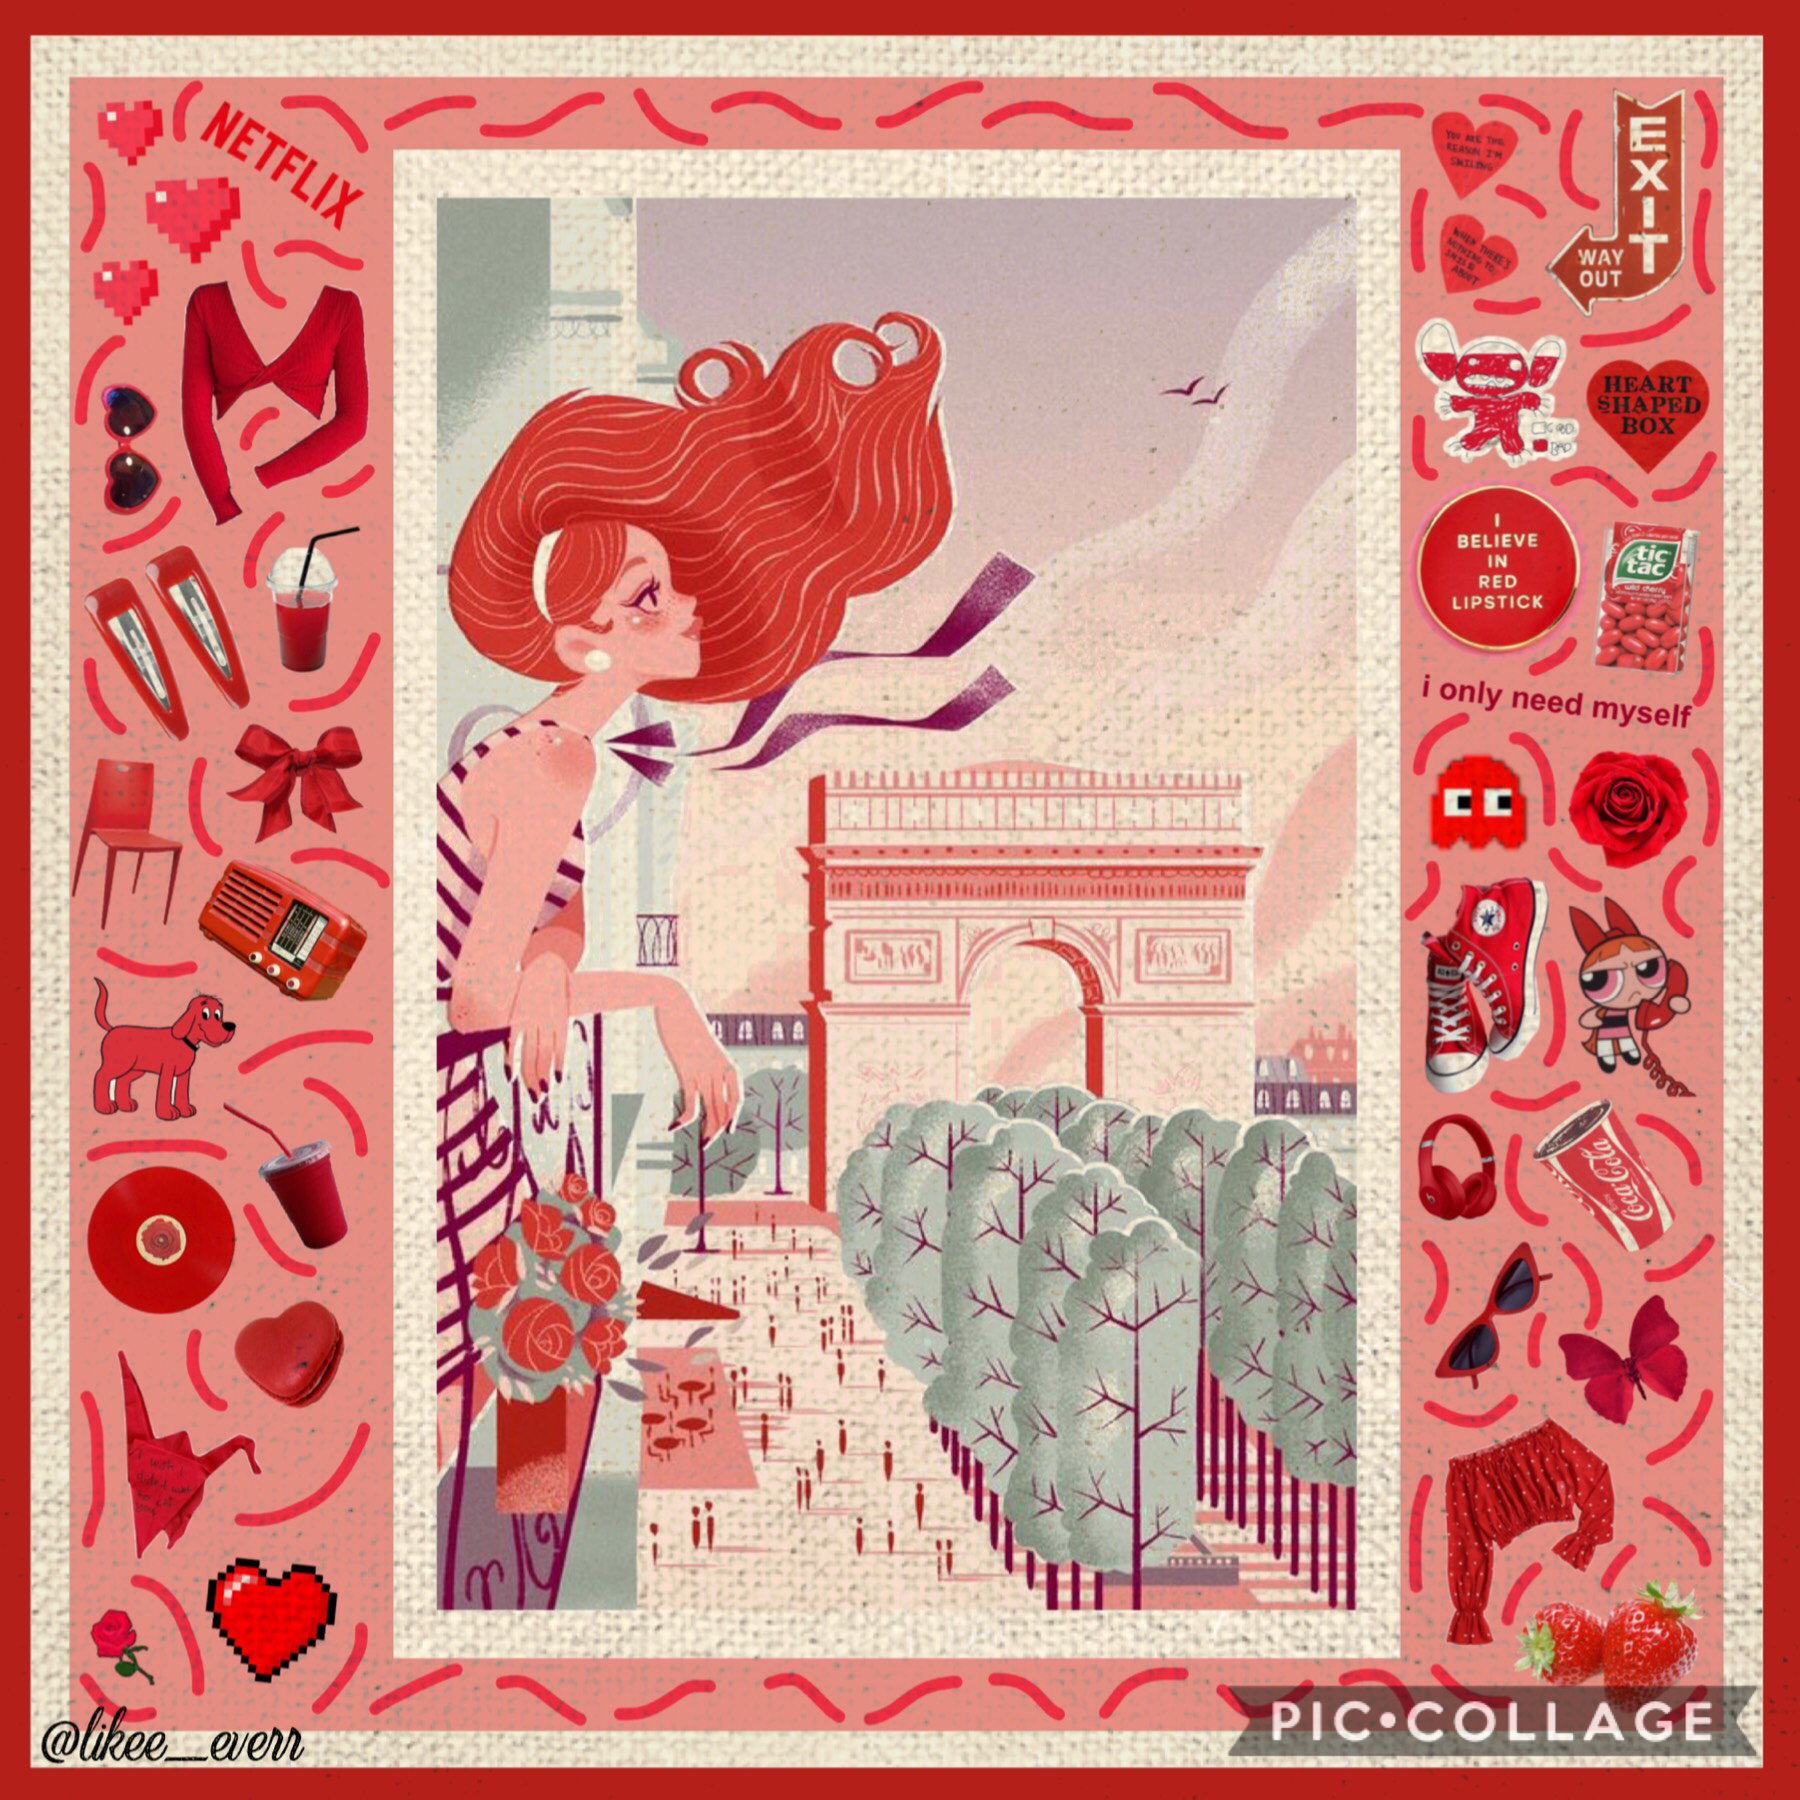 ❤️TAP❤️ This is late for Valentine's Day, but it's better late than never! I really enjoy the soft aesthetic of this one.  Q: What is your fav holiday? A: 1st: Halloween, 2nd: New Years, and 3rd Christmas